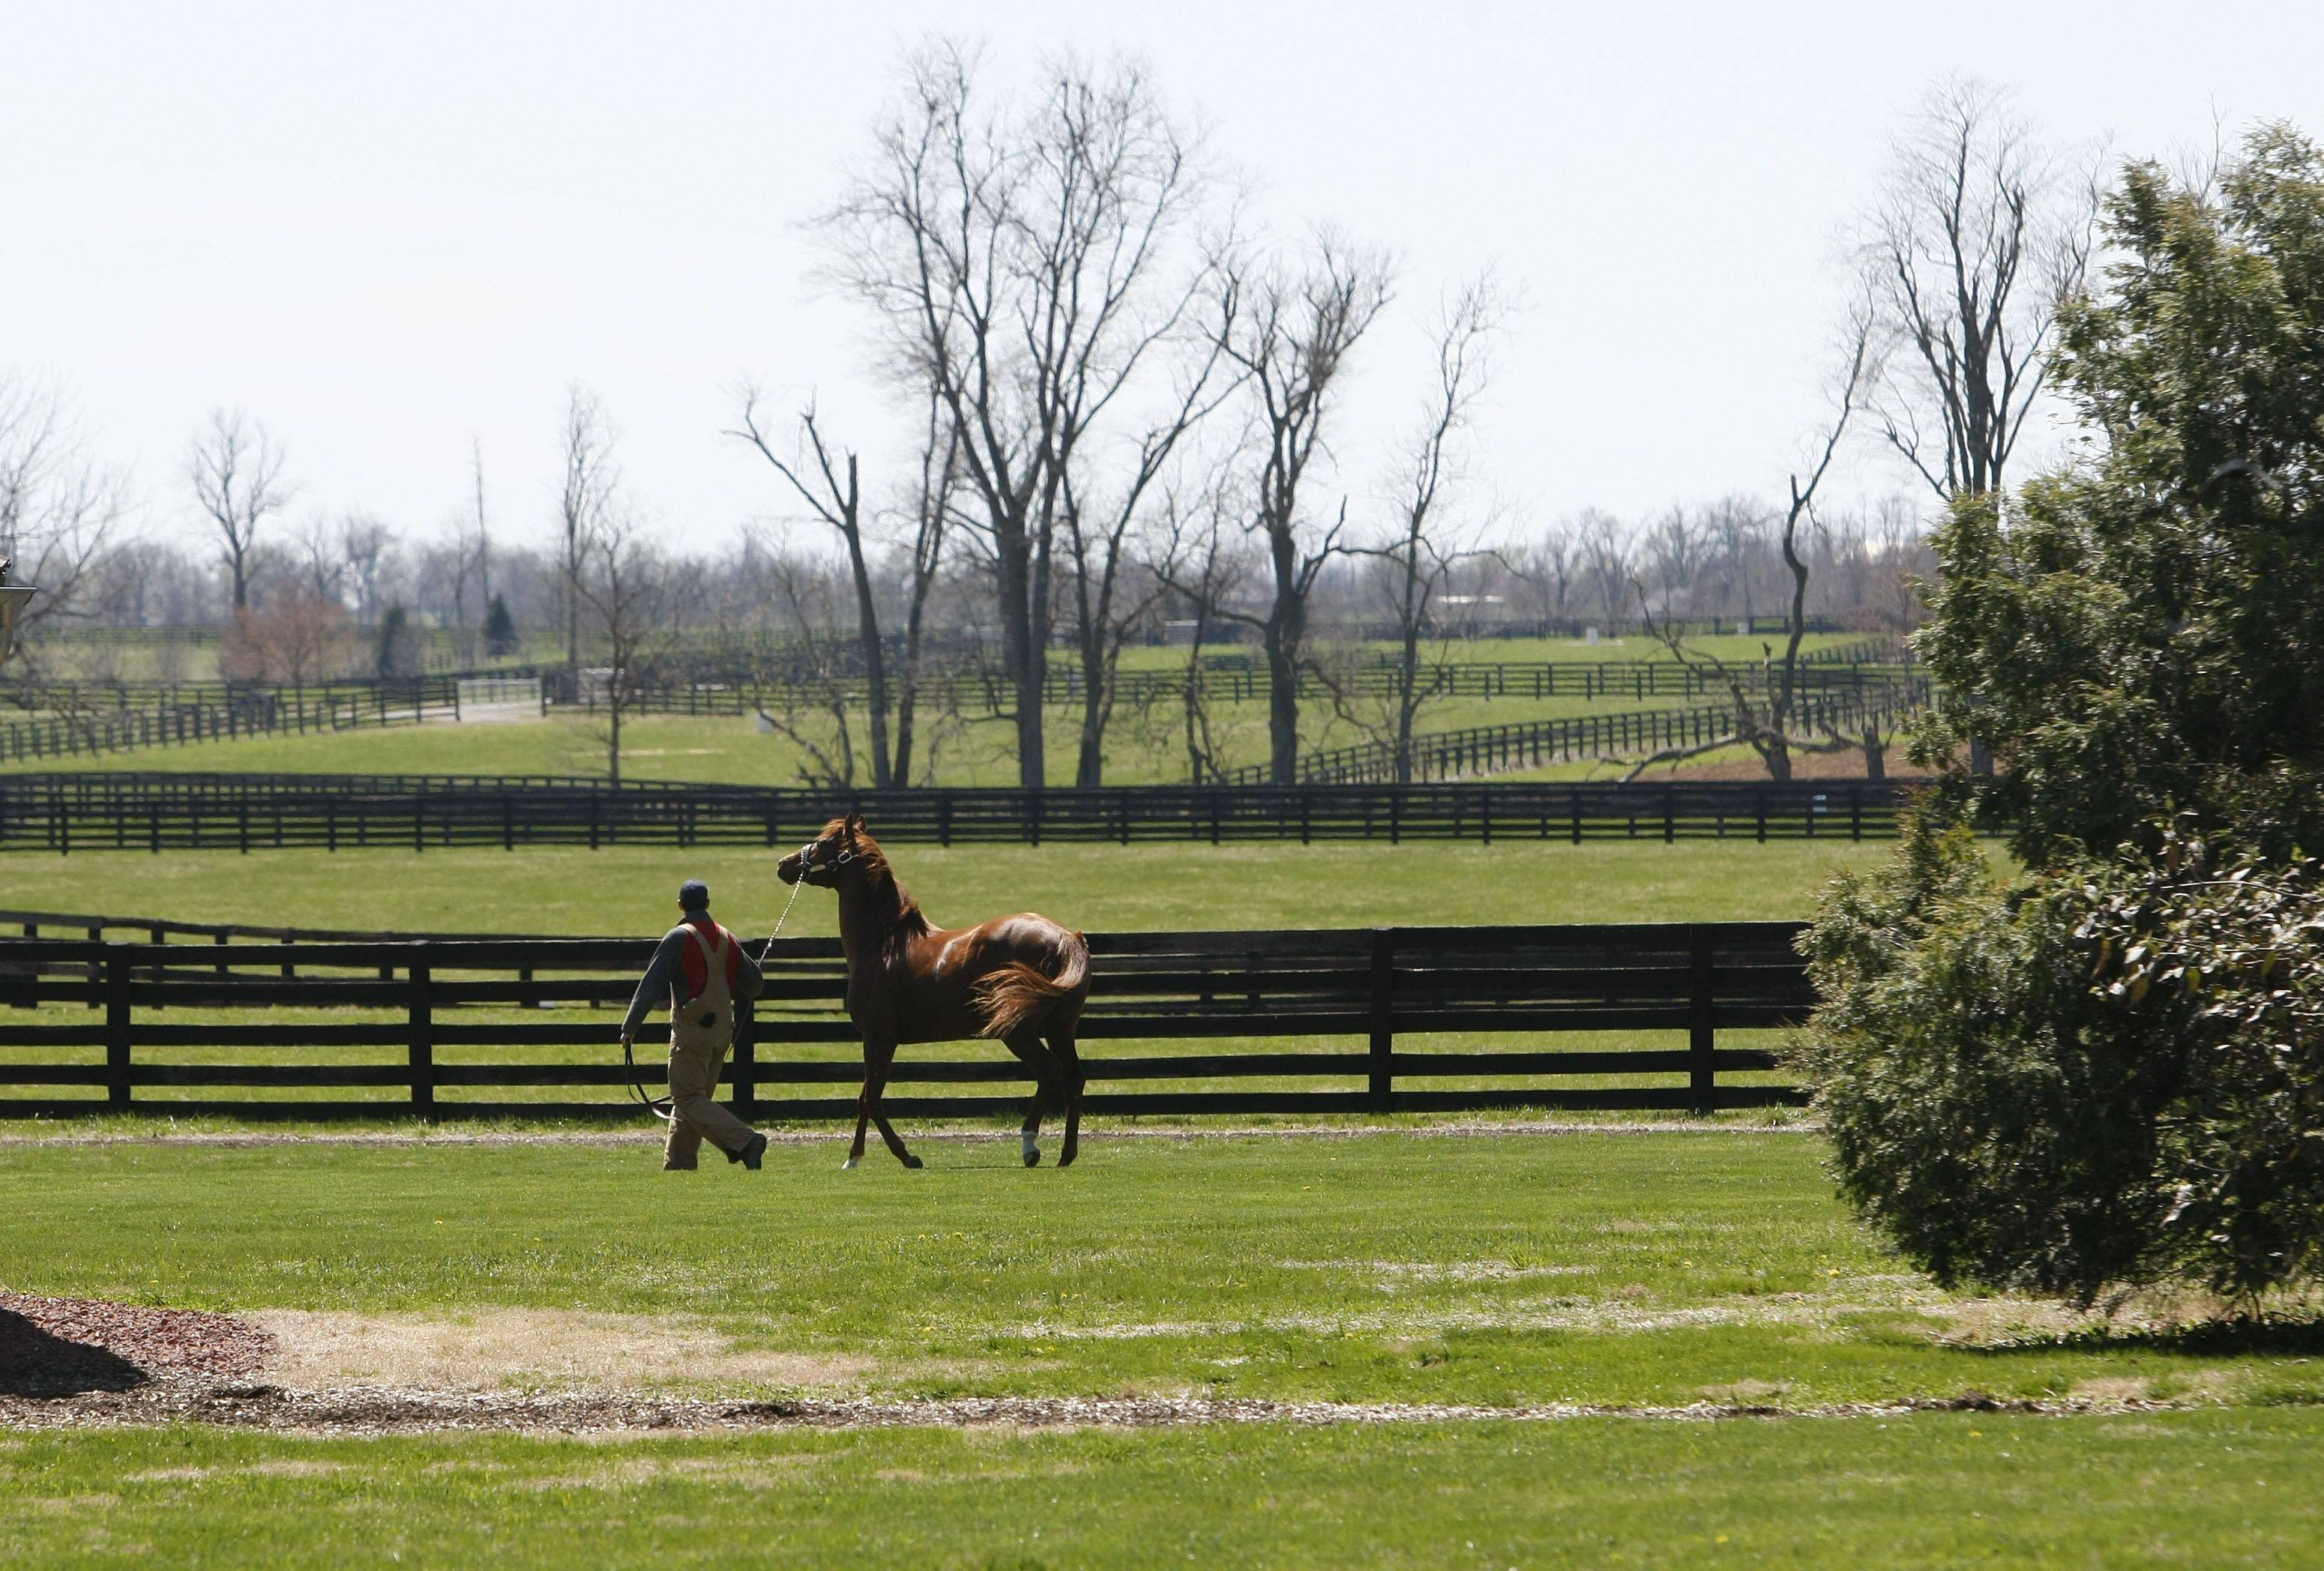 A stallion is taken to a paddock to graze at the Three Chimneys Farm in Midway, Ky. Spring is a popular time to visit Kentucky's bluegrass region.